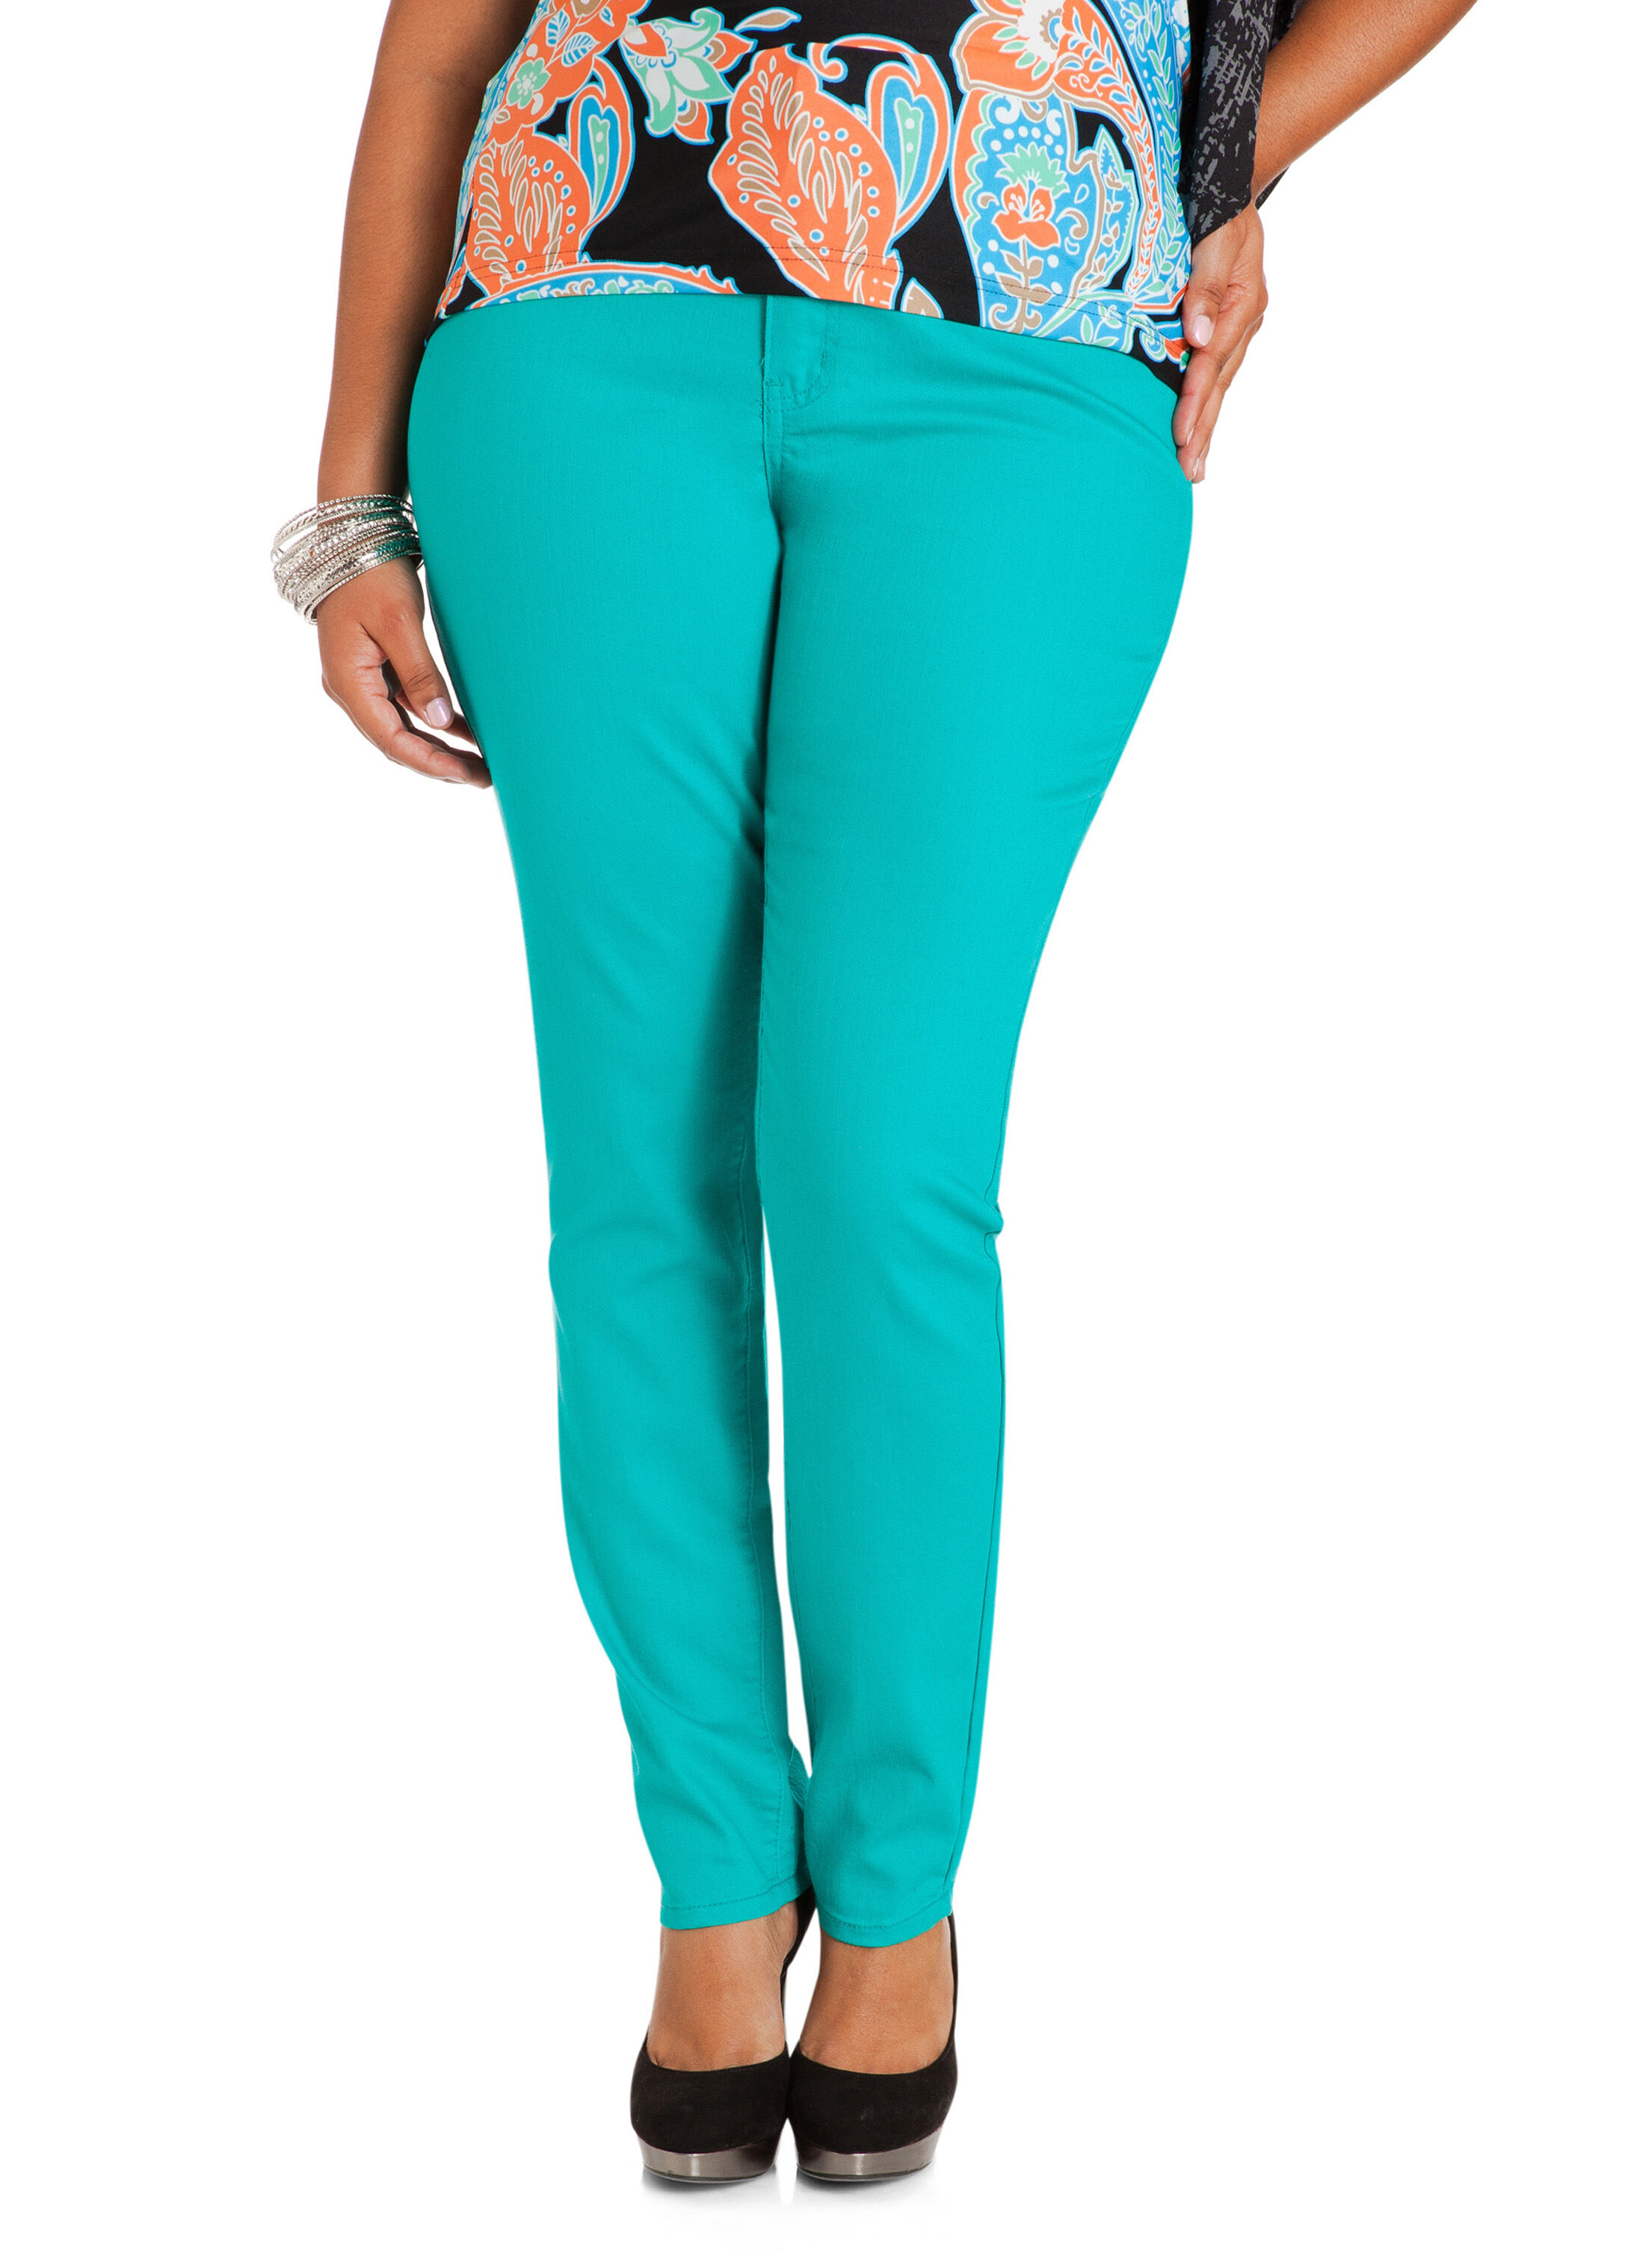 Turquoise Jeggings